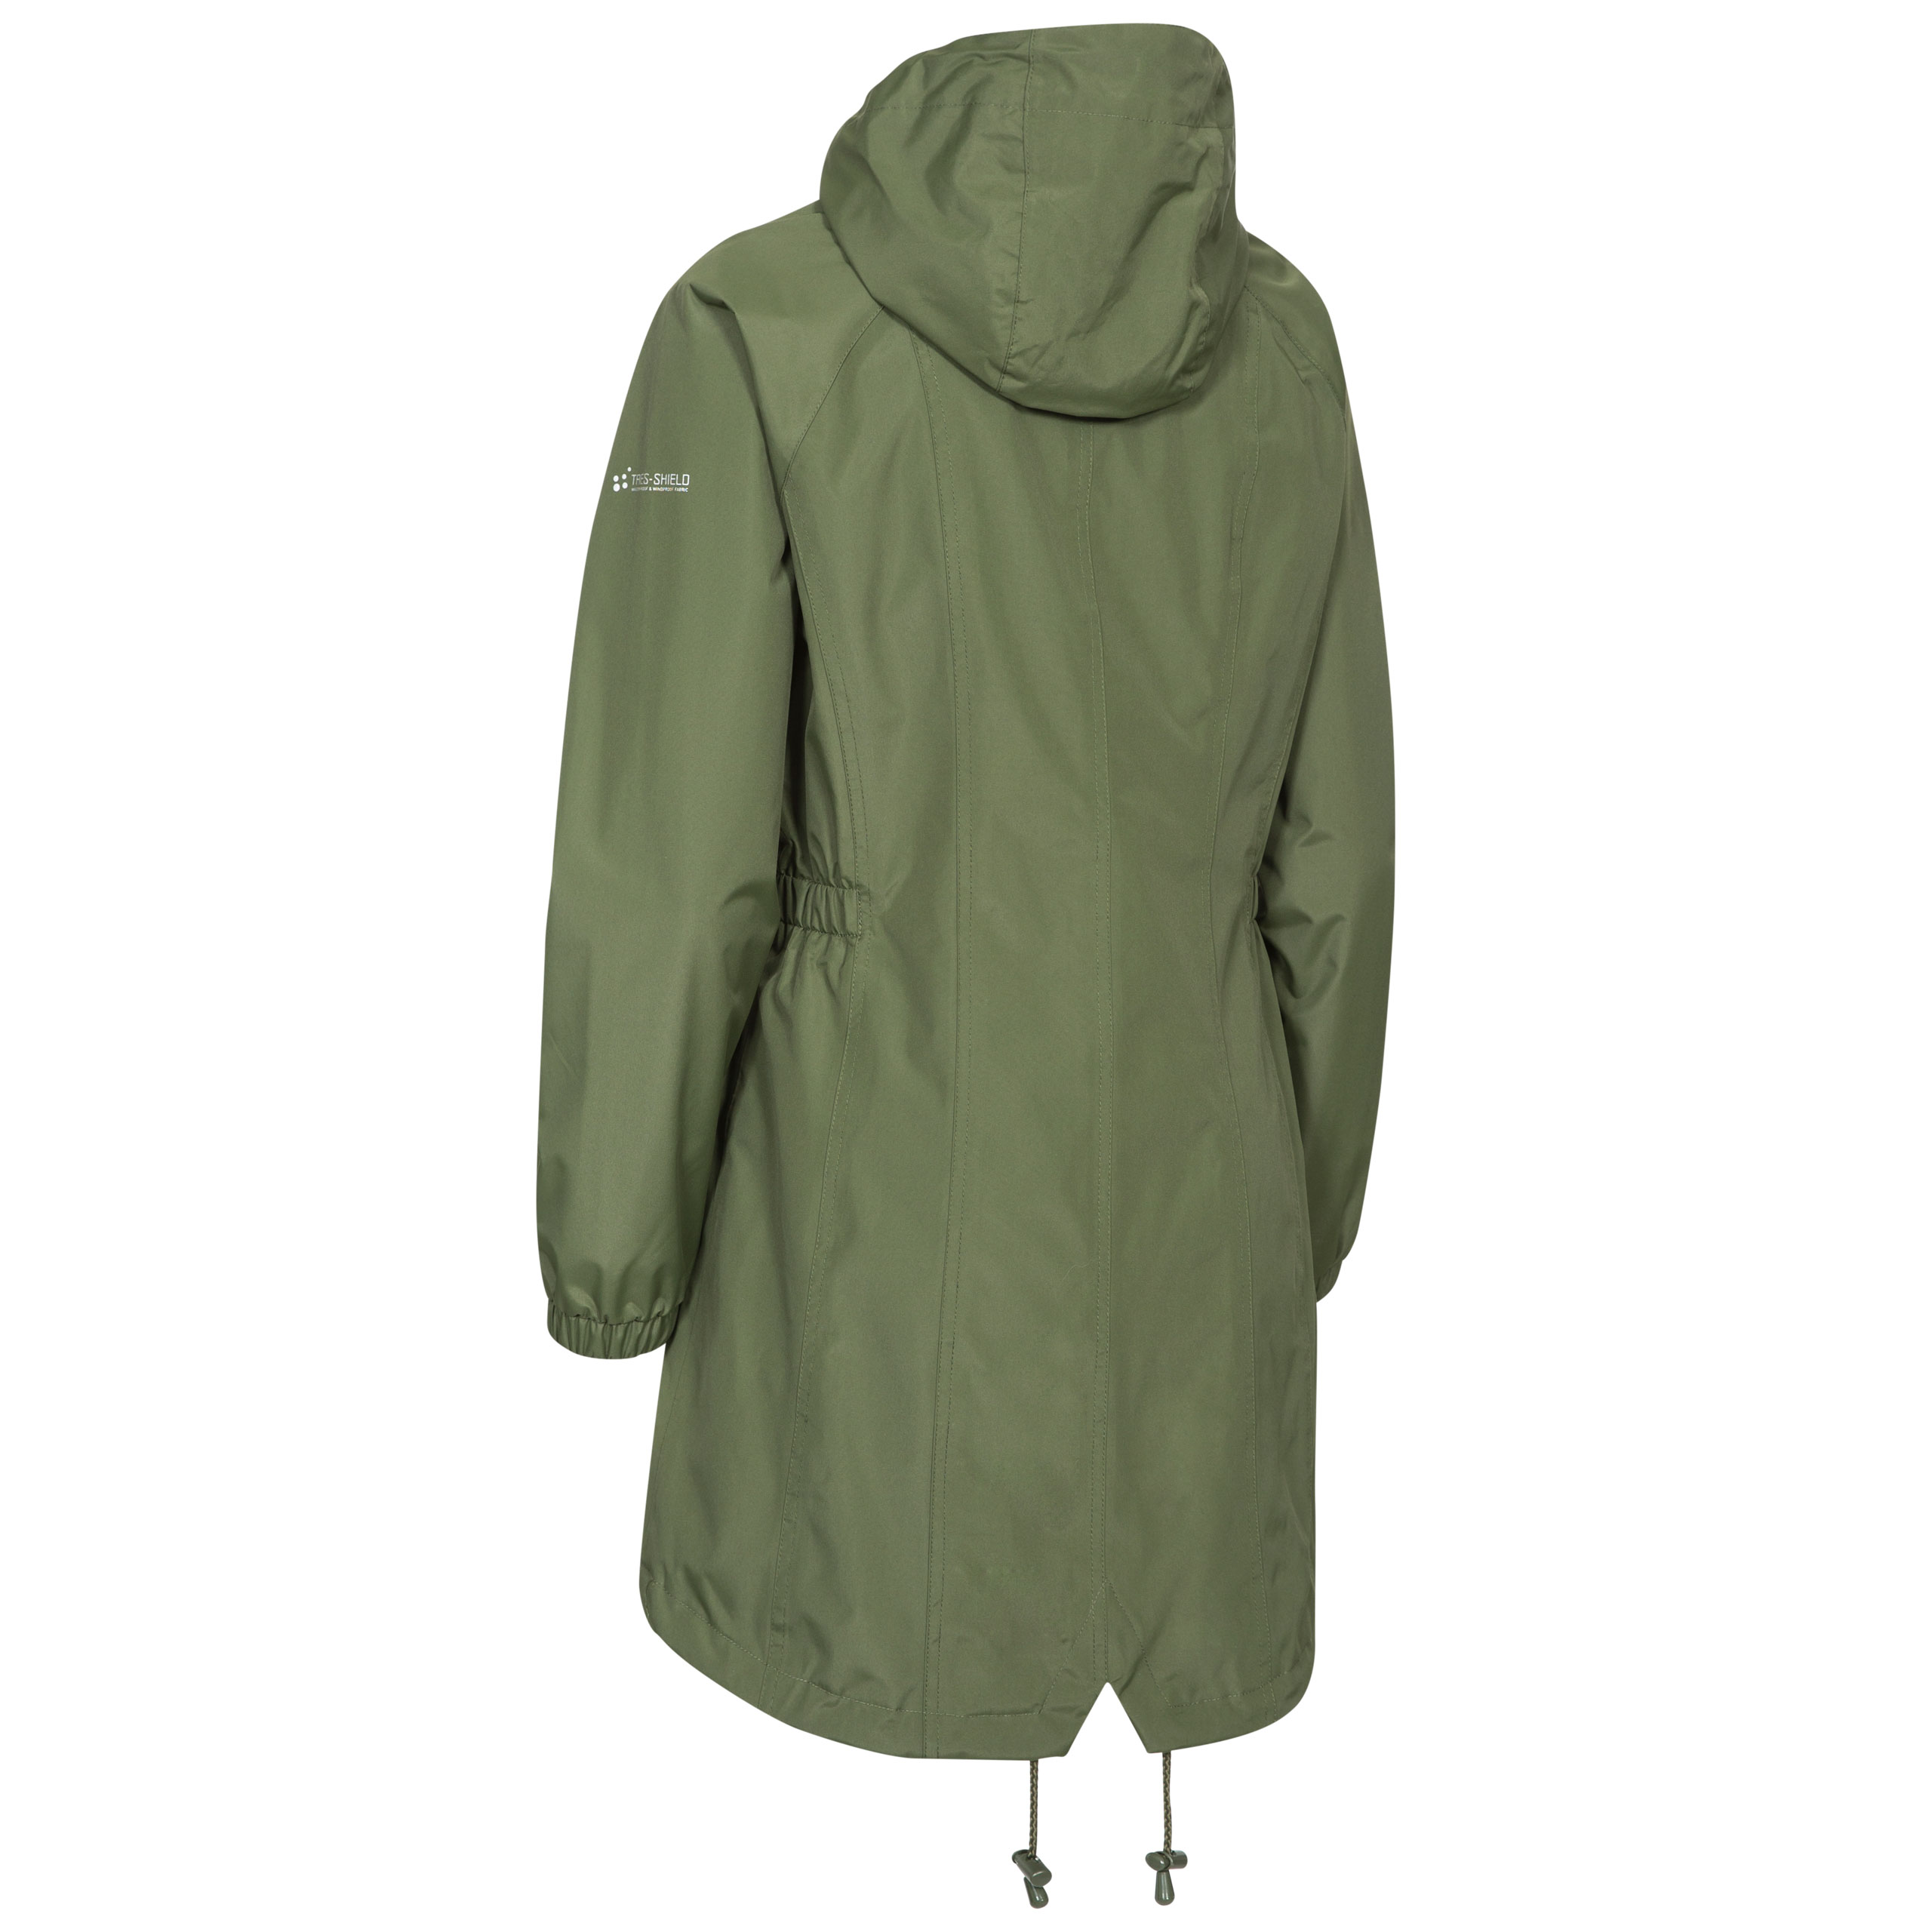 Trespass-Womens-Parka-Jacket-Hooded-Waterproof-Longline-Coat-Polka-Dot thumbnail 19